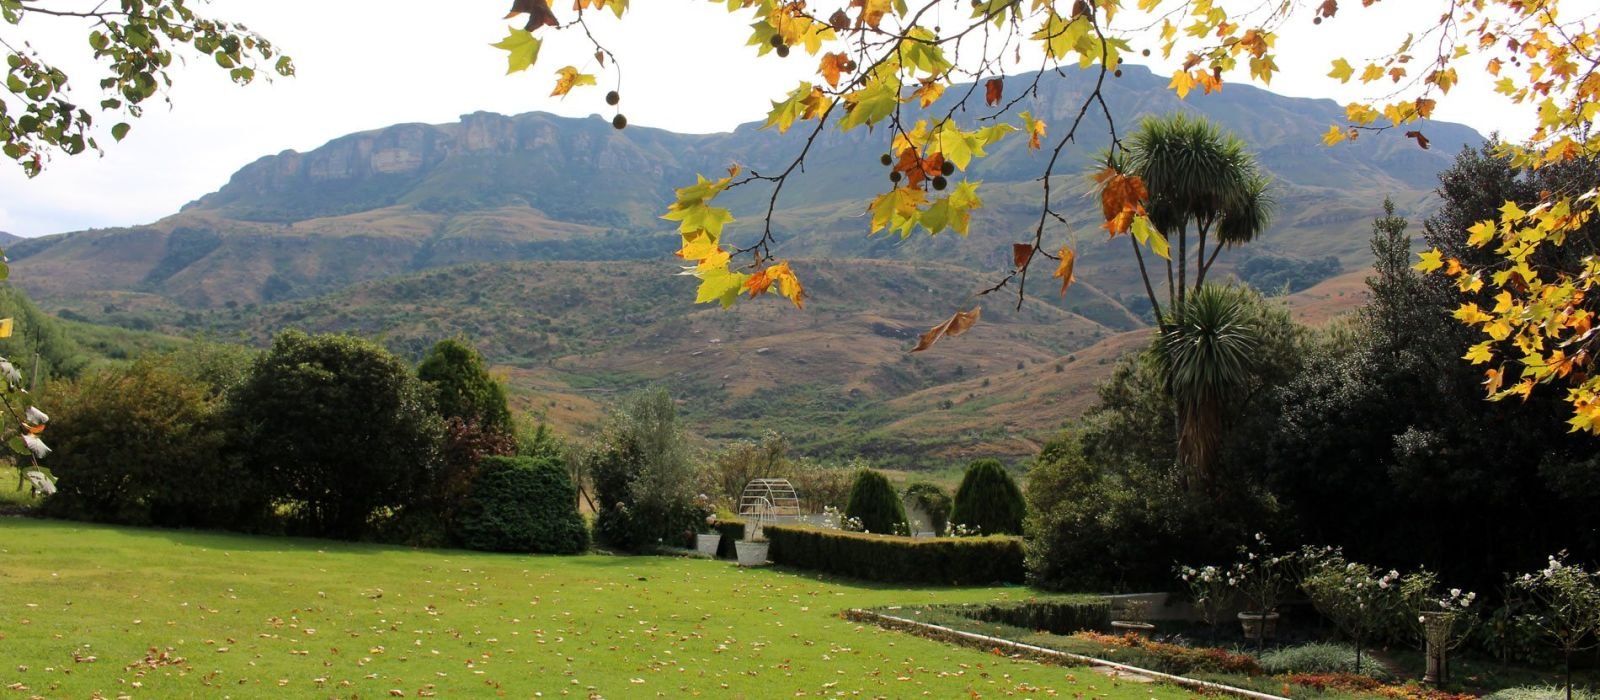 Hotel Cleopatra Mountain Farmhouse South Africa